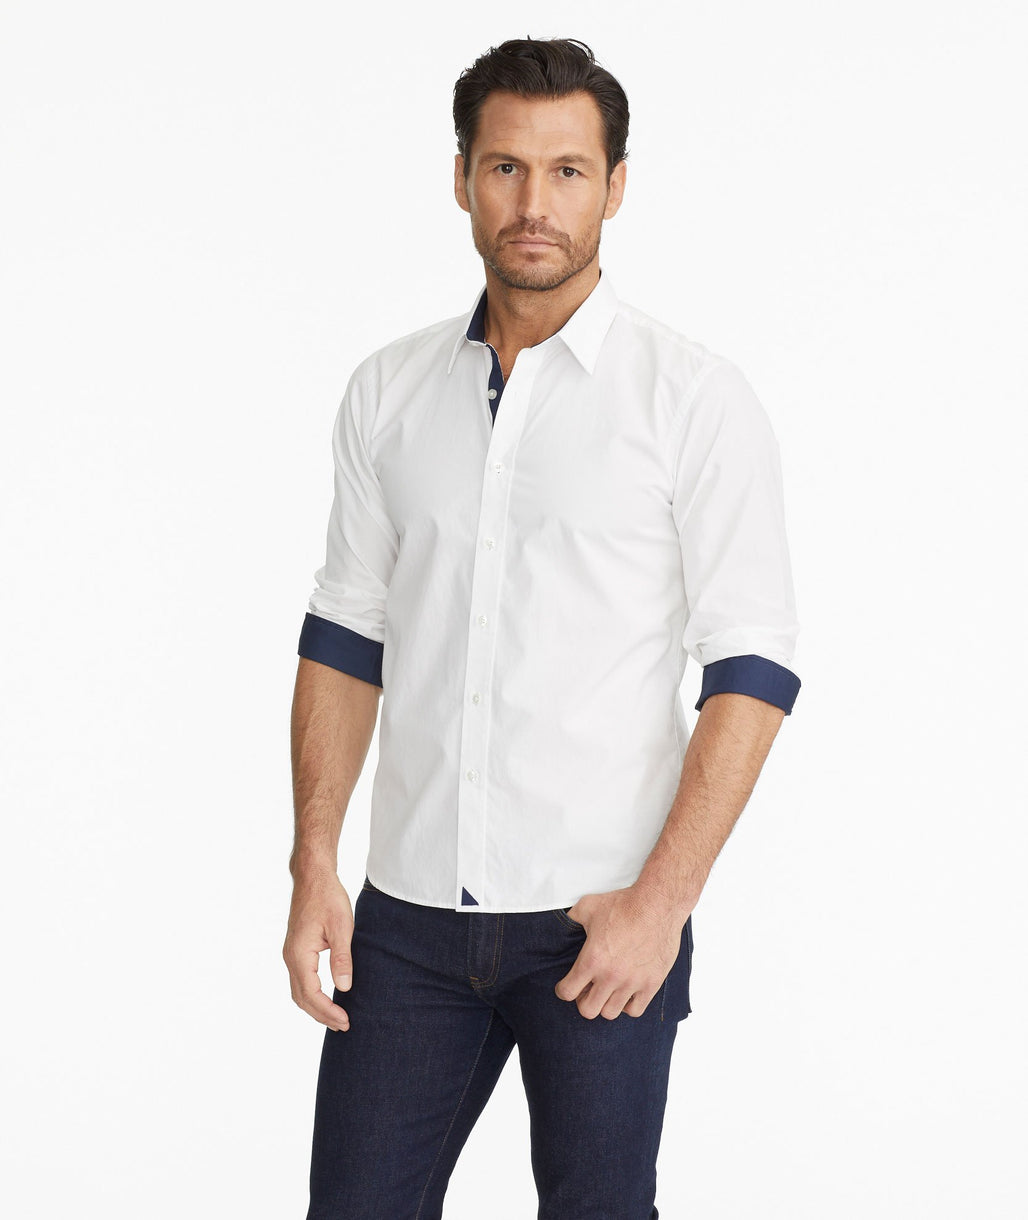 Model wearing a White Wrinkle-Free Las Cases Special Shirt